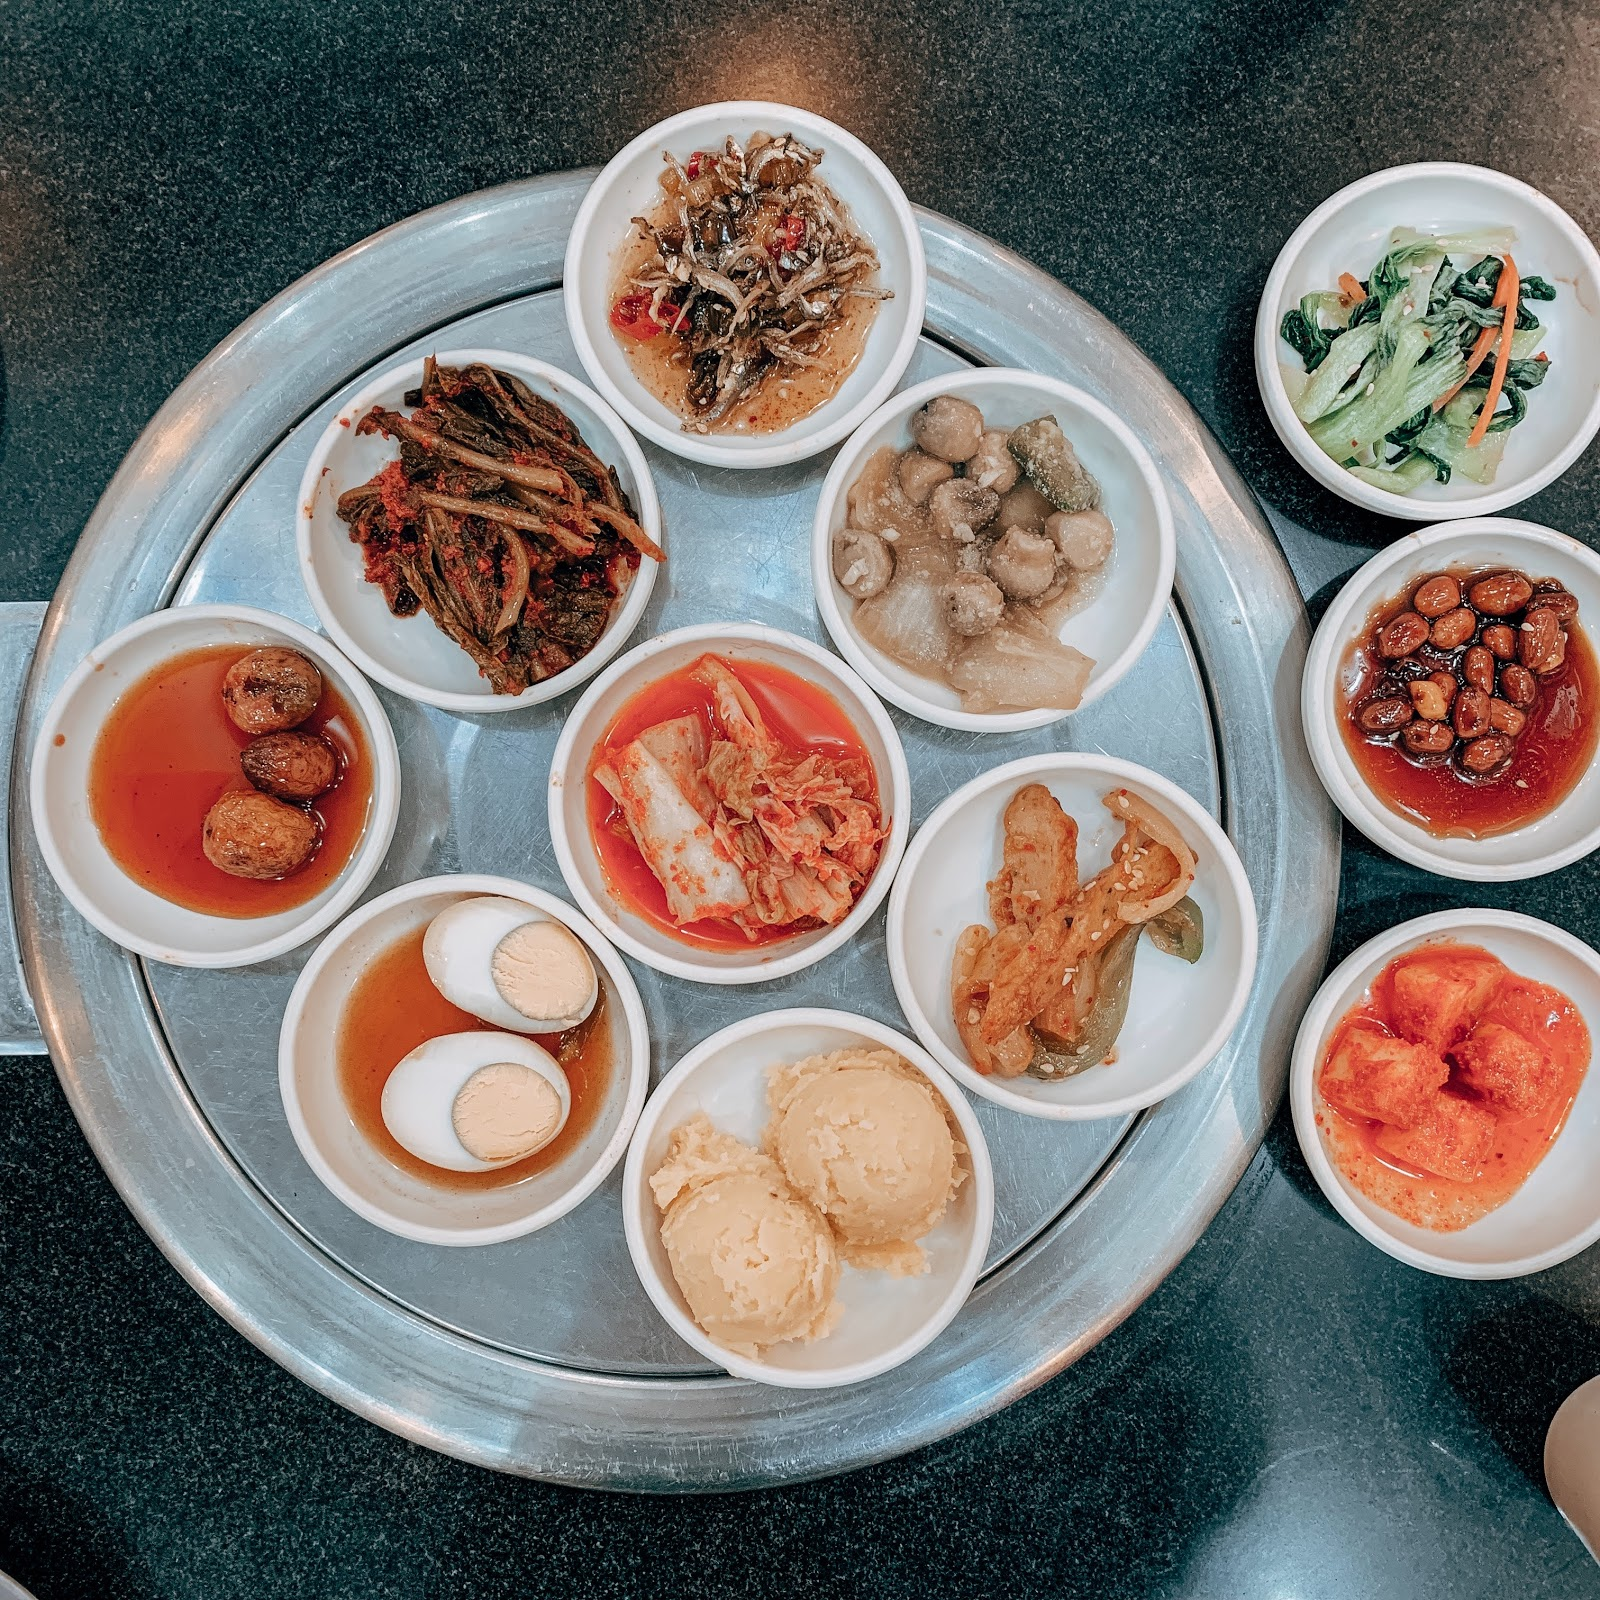 bowl-of-food-on-gray-tray-2781540